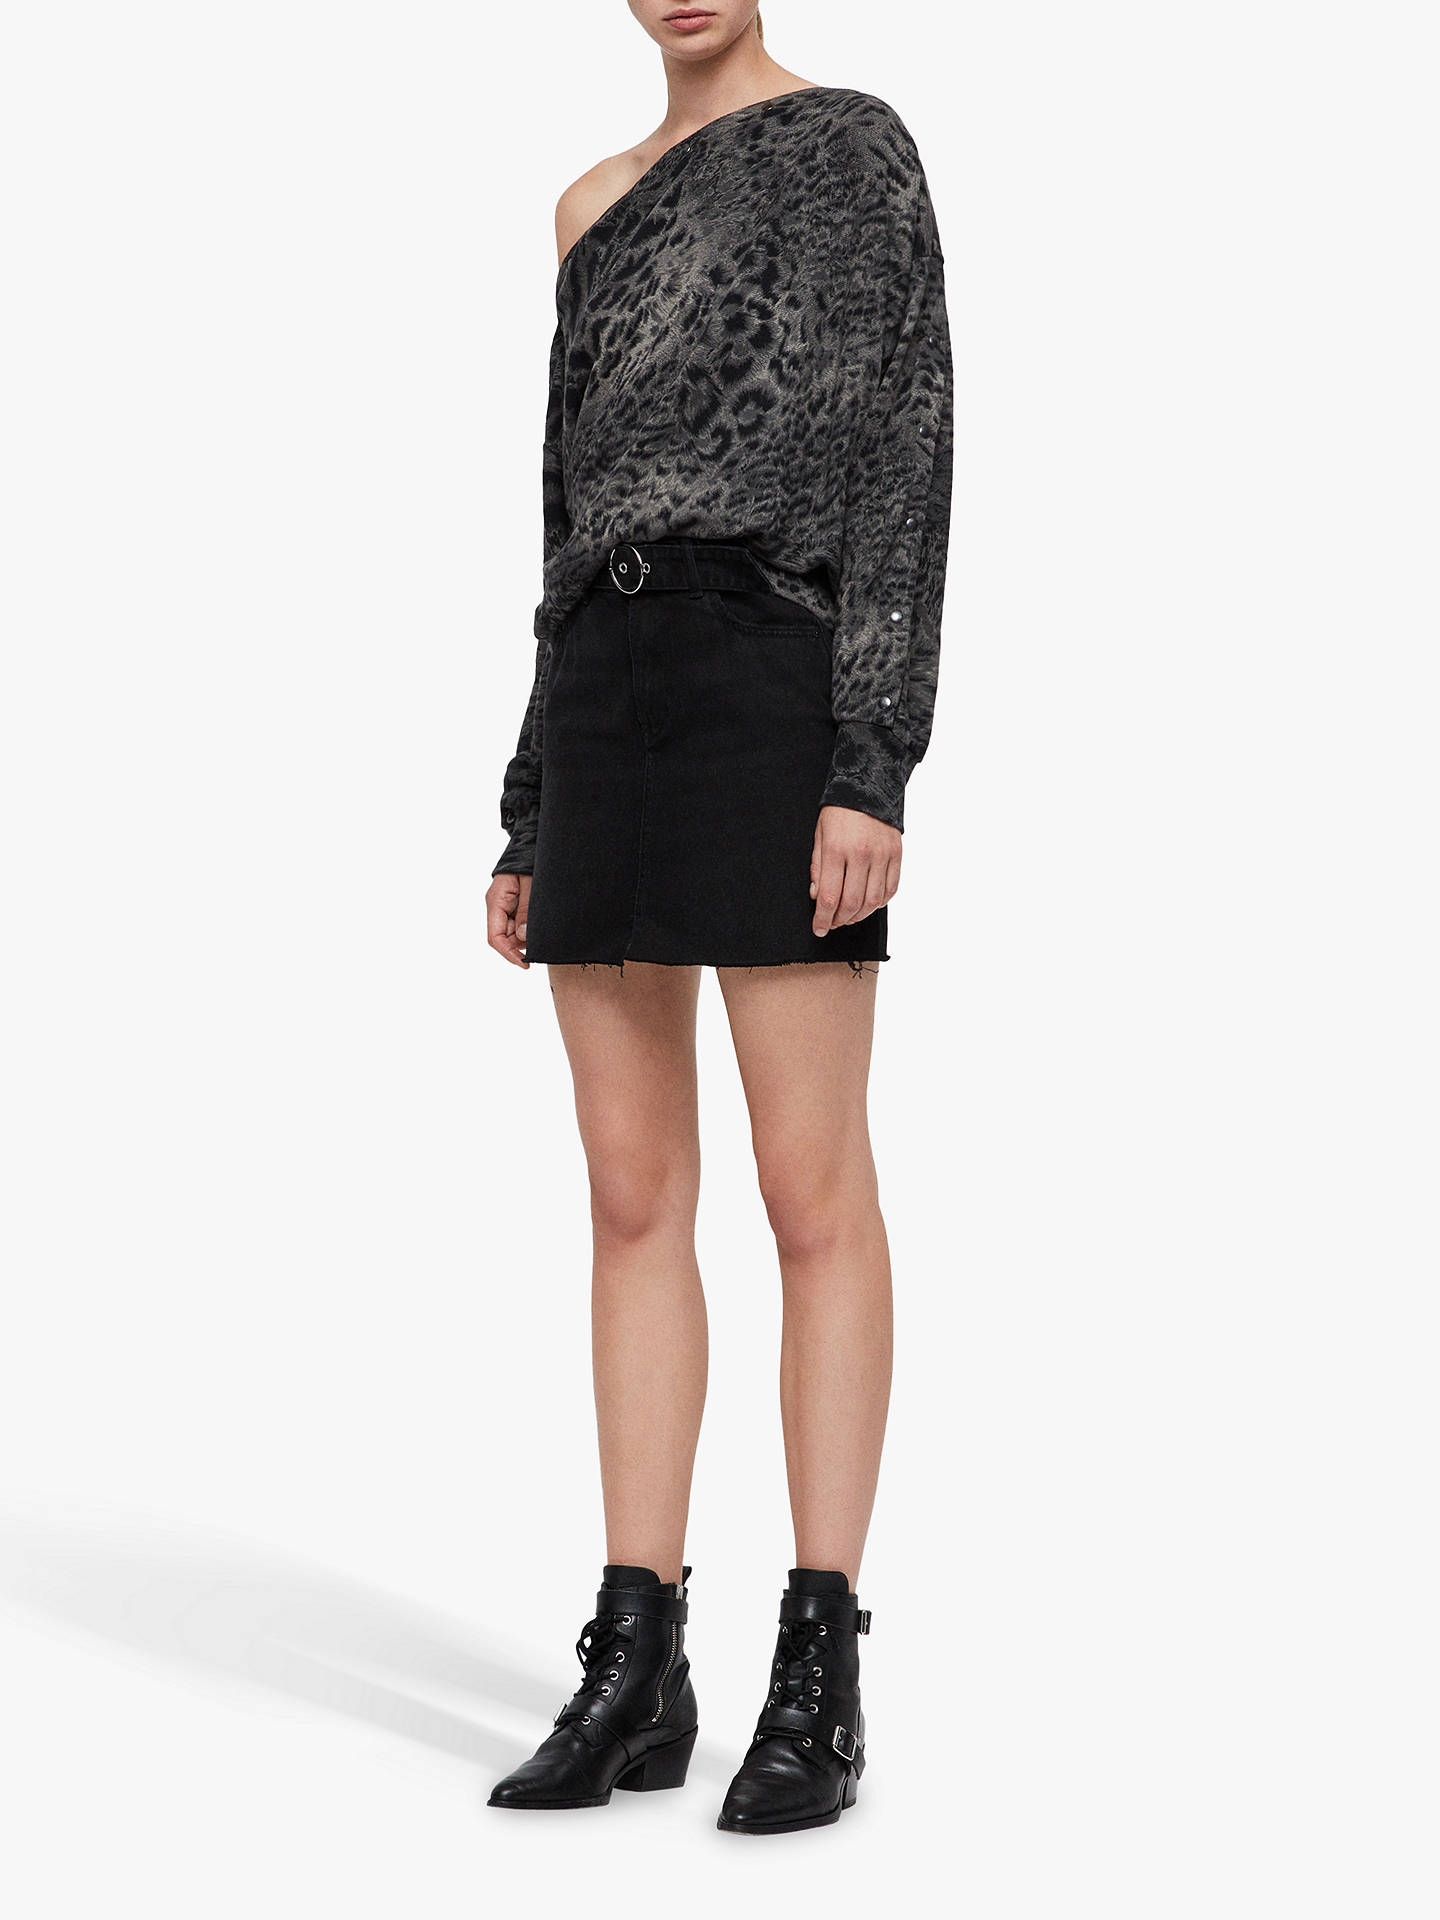 BuyAllSaints Paw Kaarlo Sweatshirt, Black, L Online at johnlewis.com